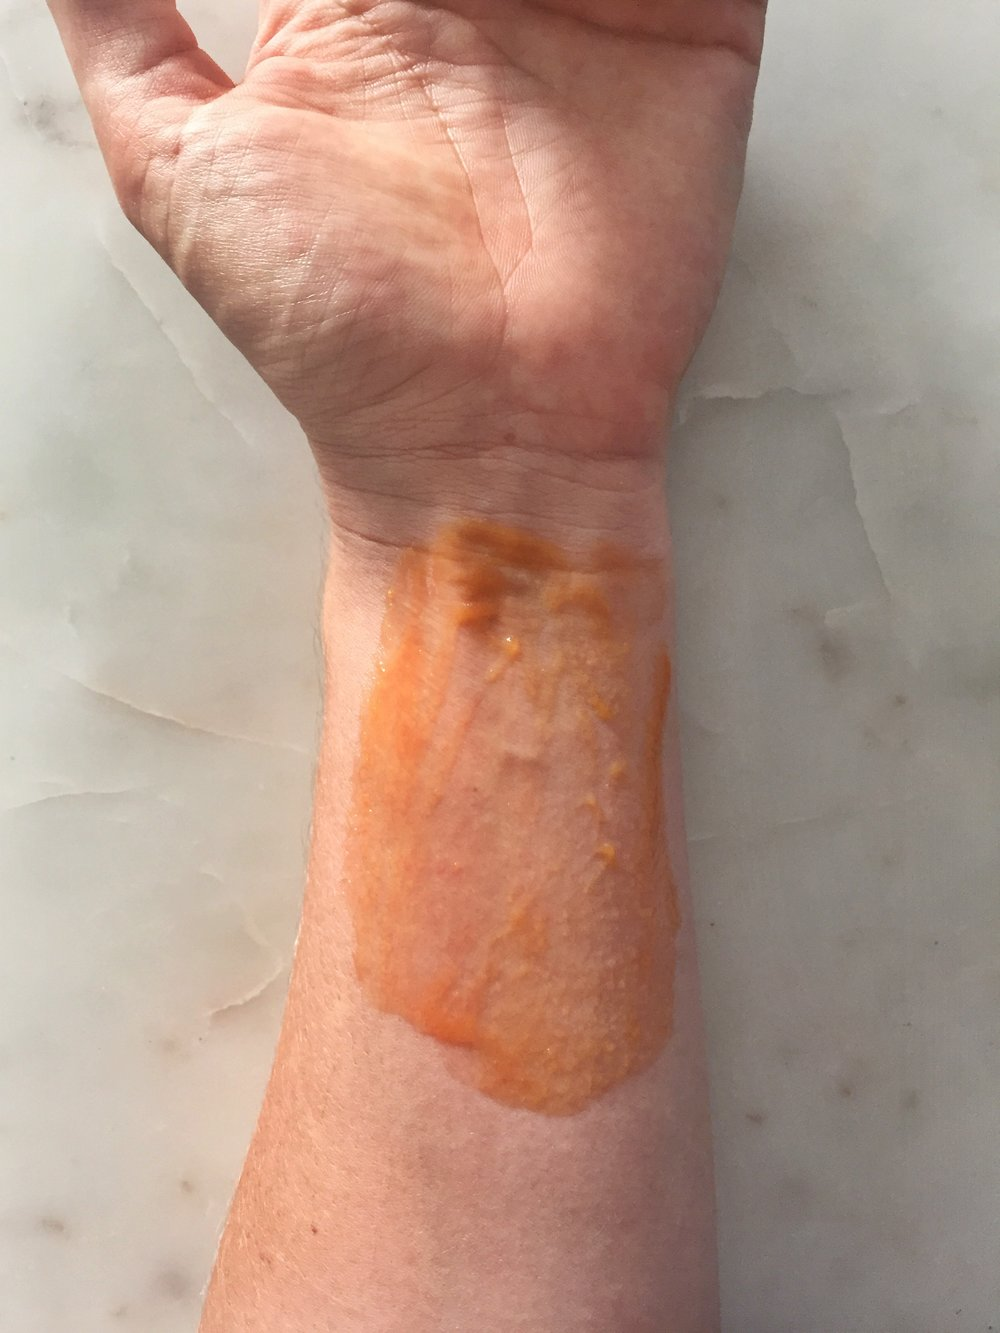 papaya, honey, lemon - Take one small papaya + juice from one lemon + a tablespoon of Manuka HoneyApply to brown spots, or sun damaged skin, and leave on for 5 minutesRinse + gently dry your skinKeep your mask in the fridge, so that you can use it once a week for the next six weeks